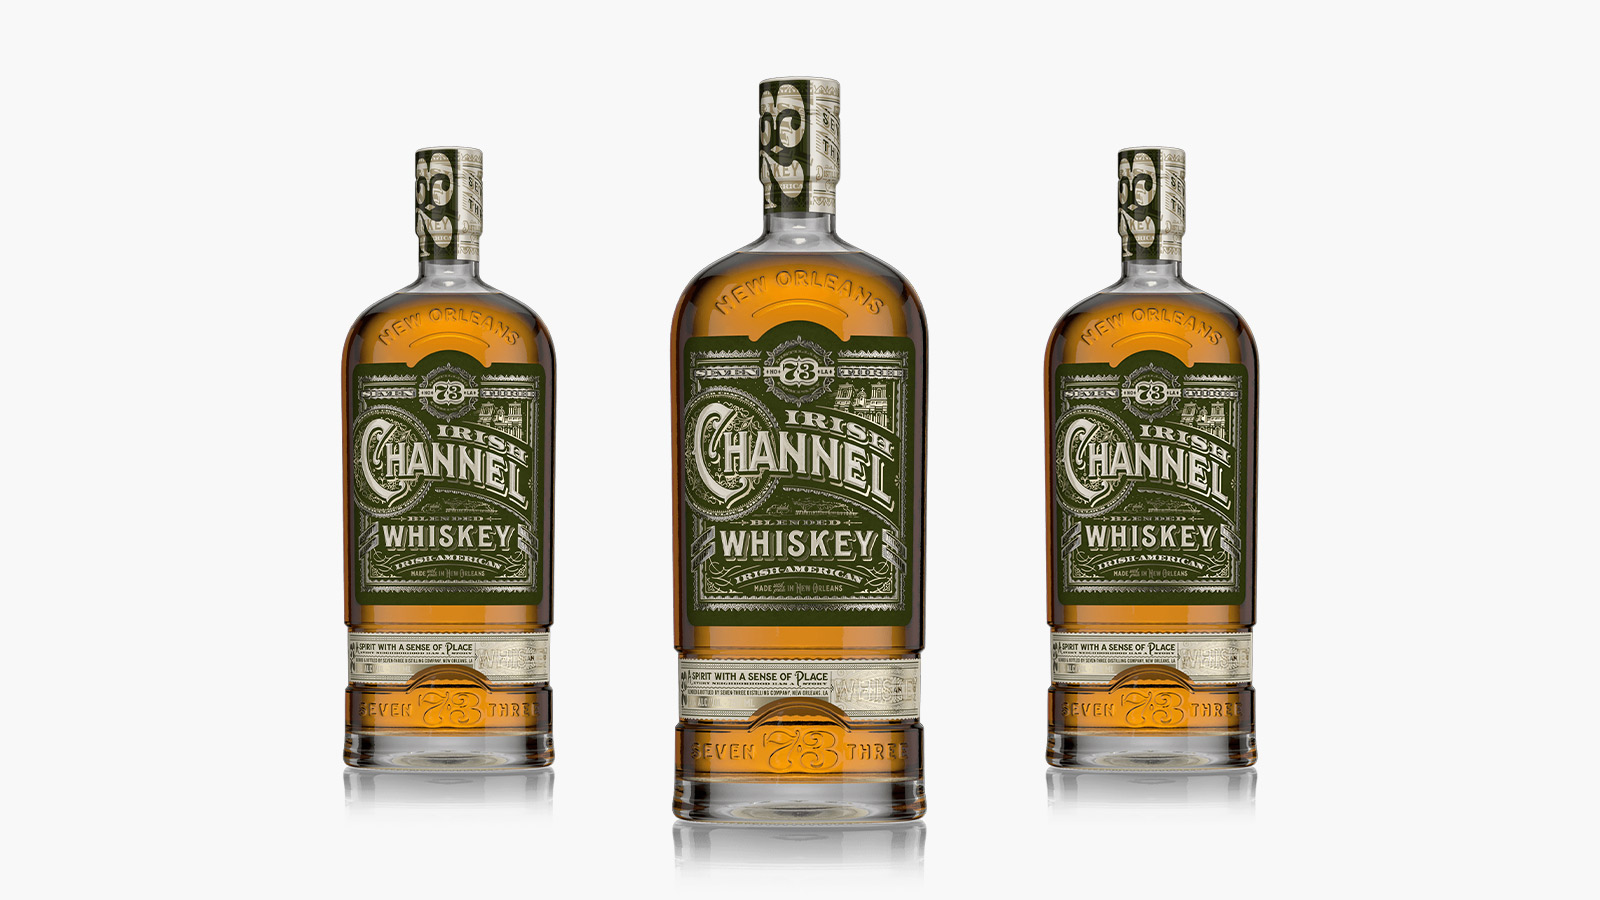 Seven Three Irish Channel Whiskey